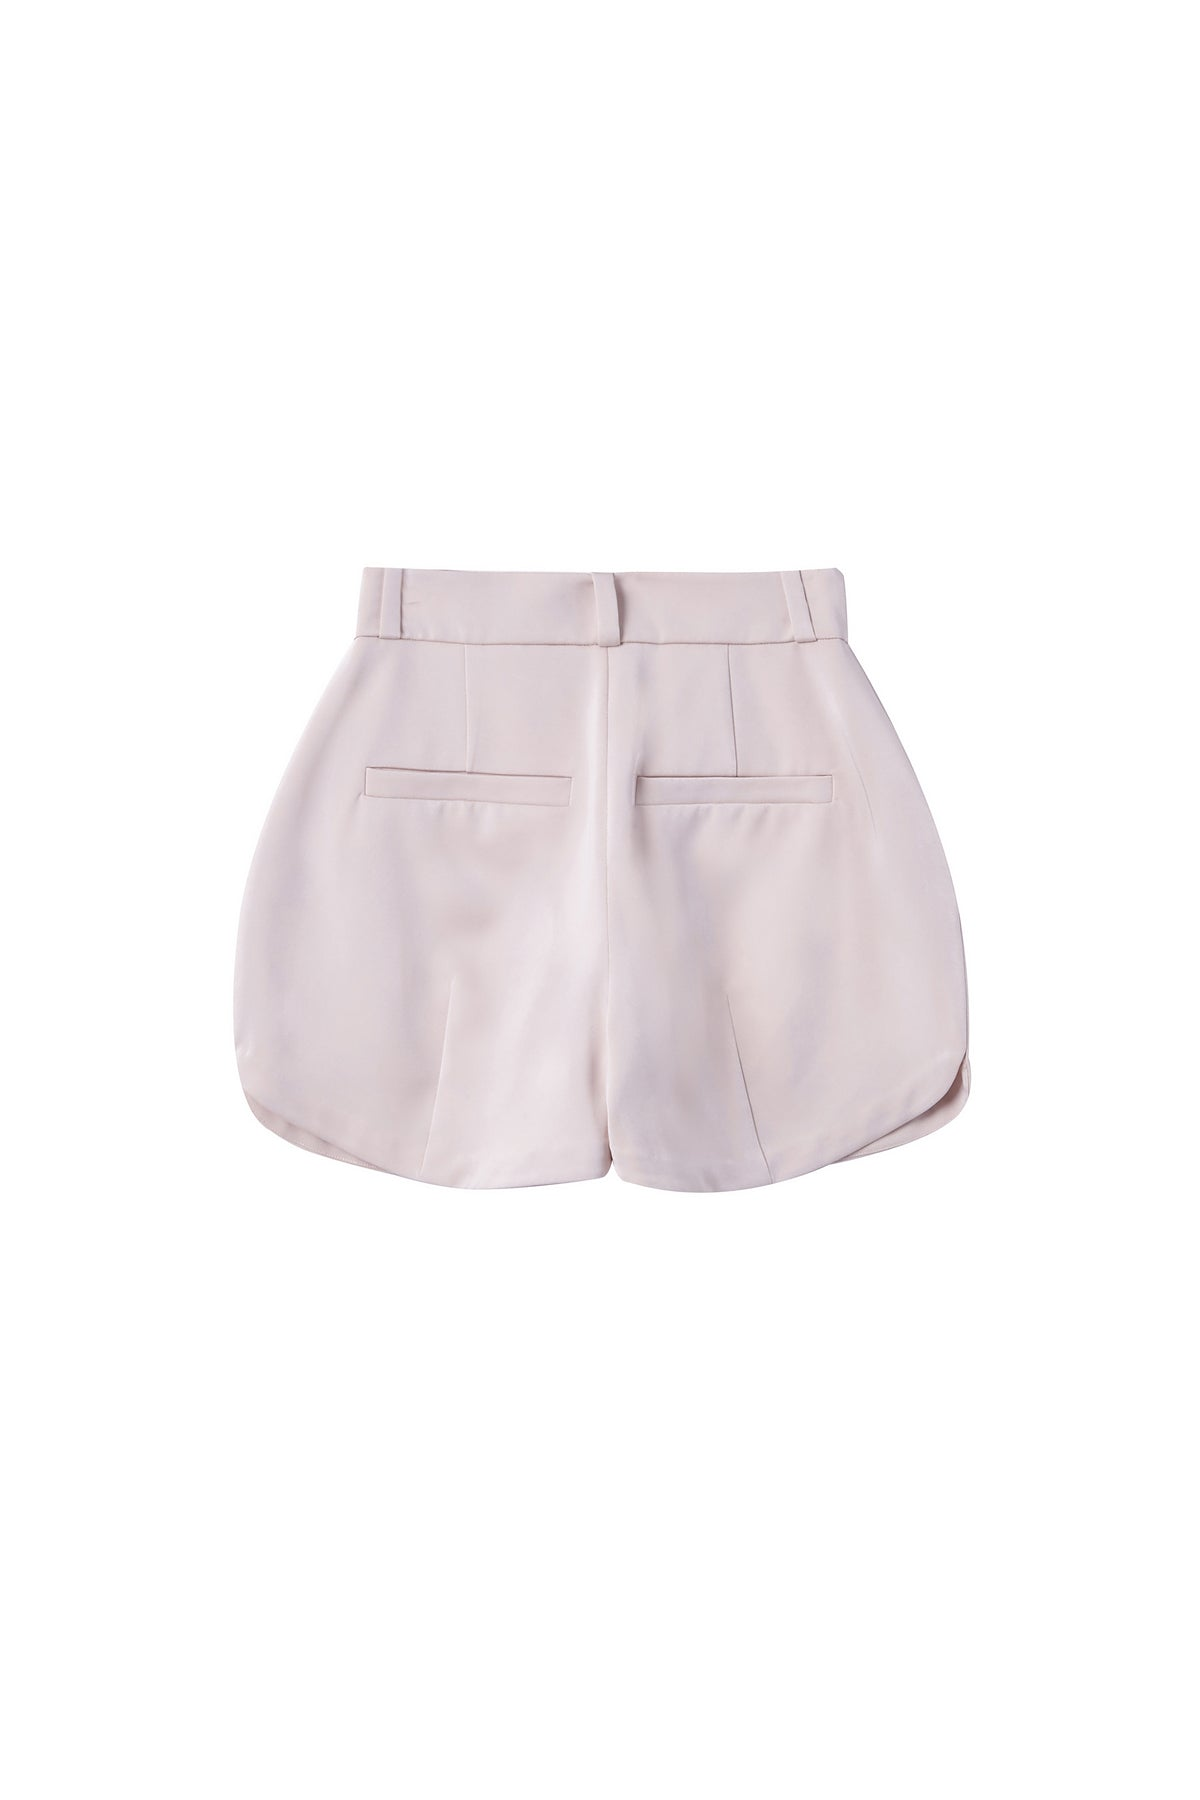 Tulipa Bulbs Shorts in Nude